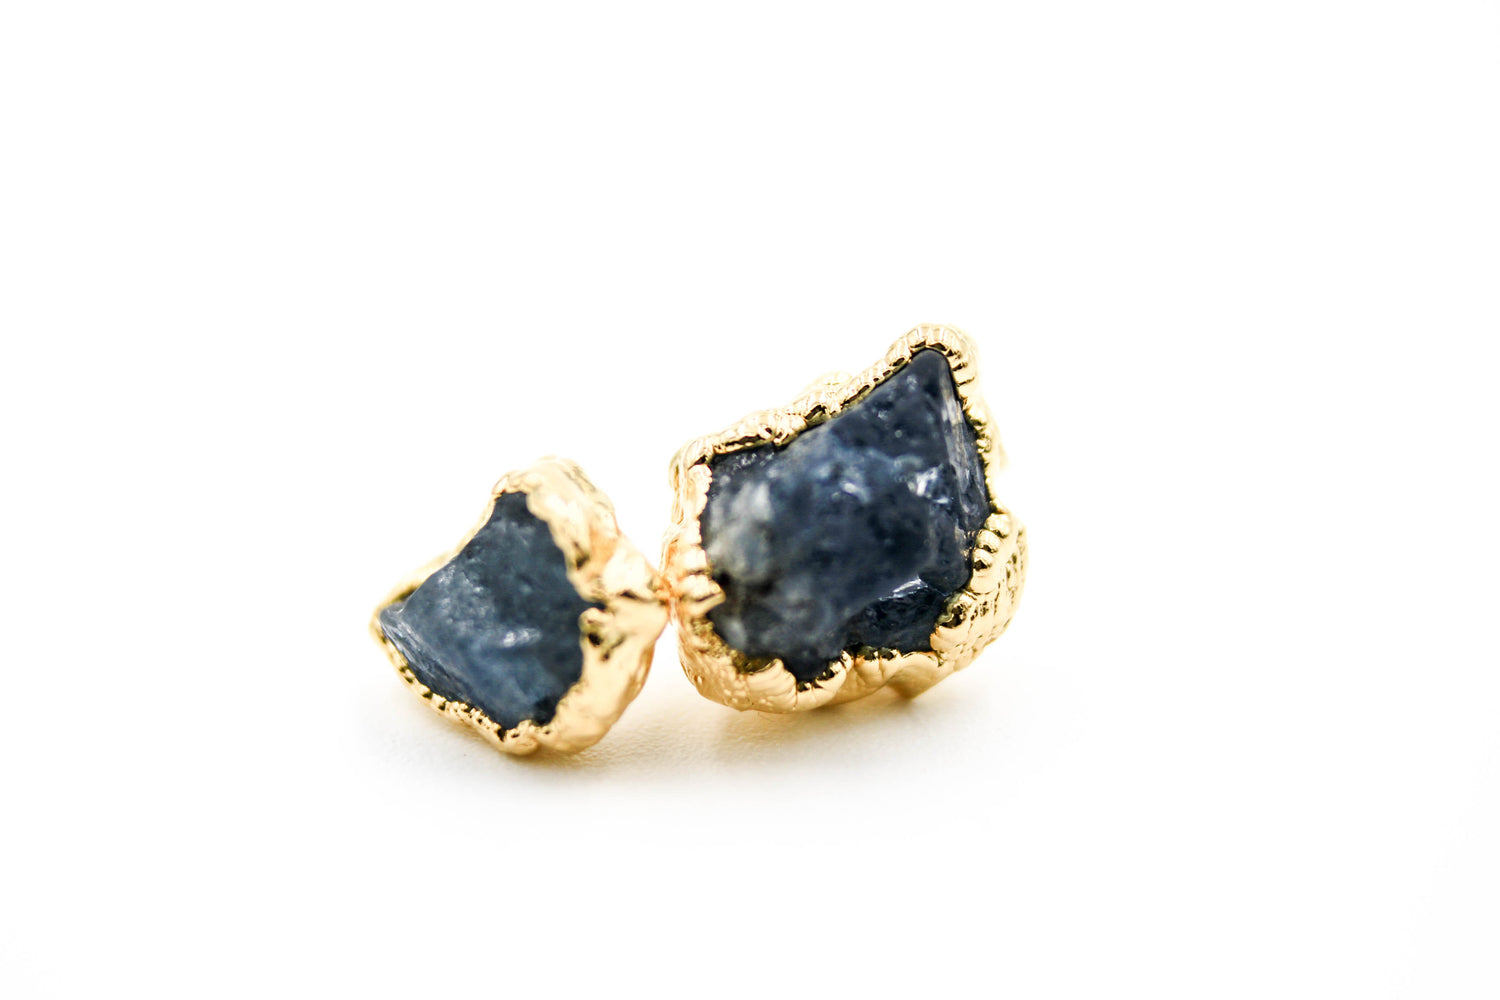 raw gemstone earrings, electroformed, sapphire, 24k yellow gold, 18k rose gold, rhodium